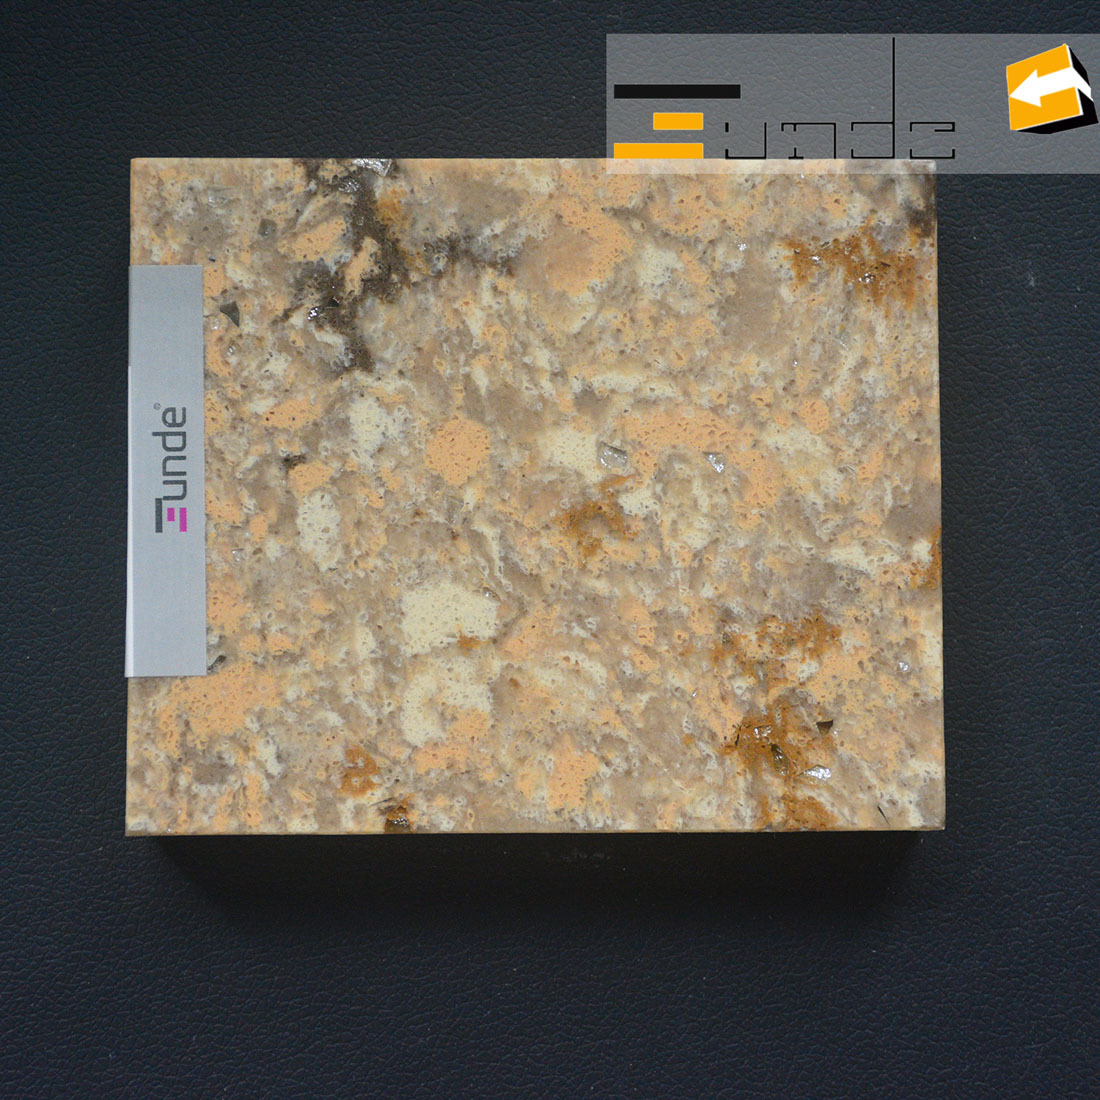 calacatta yellow quartz stone sample jd413-2